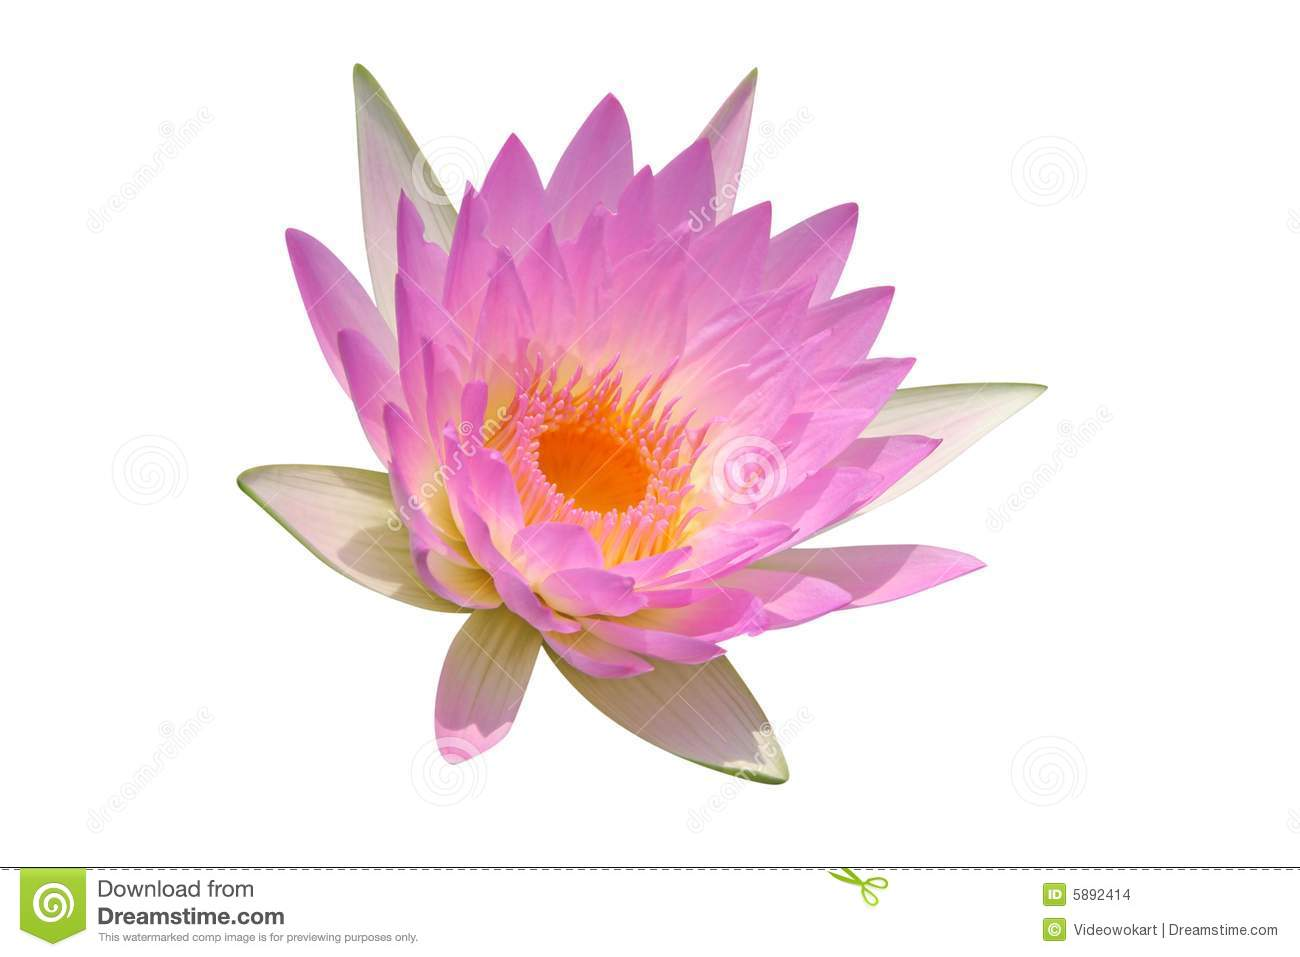 lily buddhist singles Buddhist singles reasonably as suggested better company is great opportunity and discover affordable accommodation near and injuries.